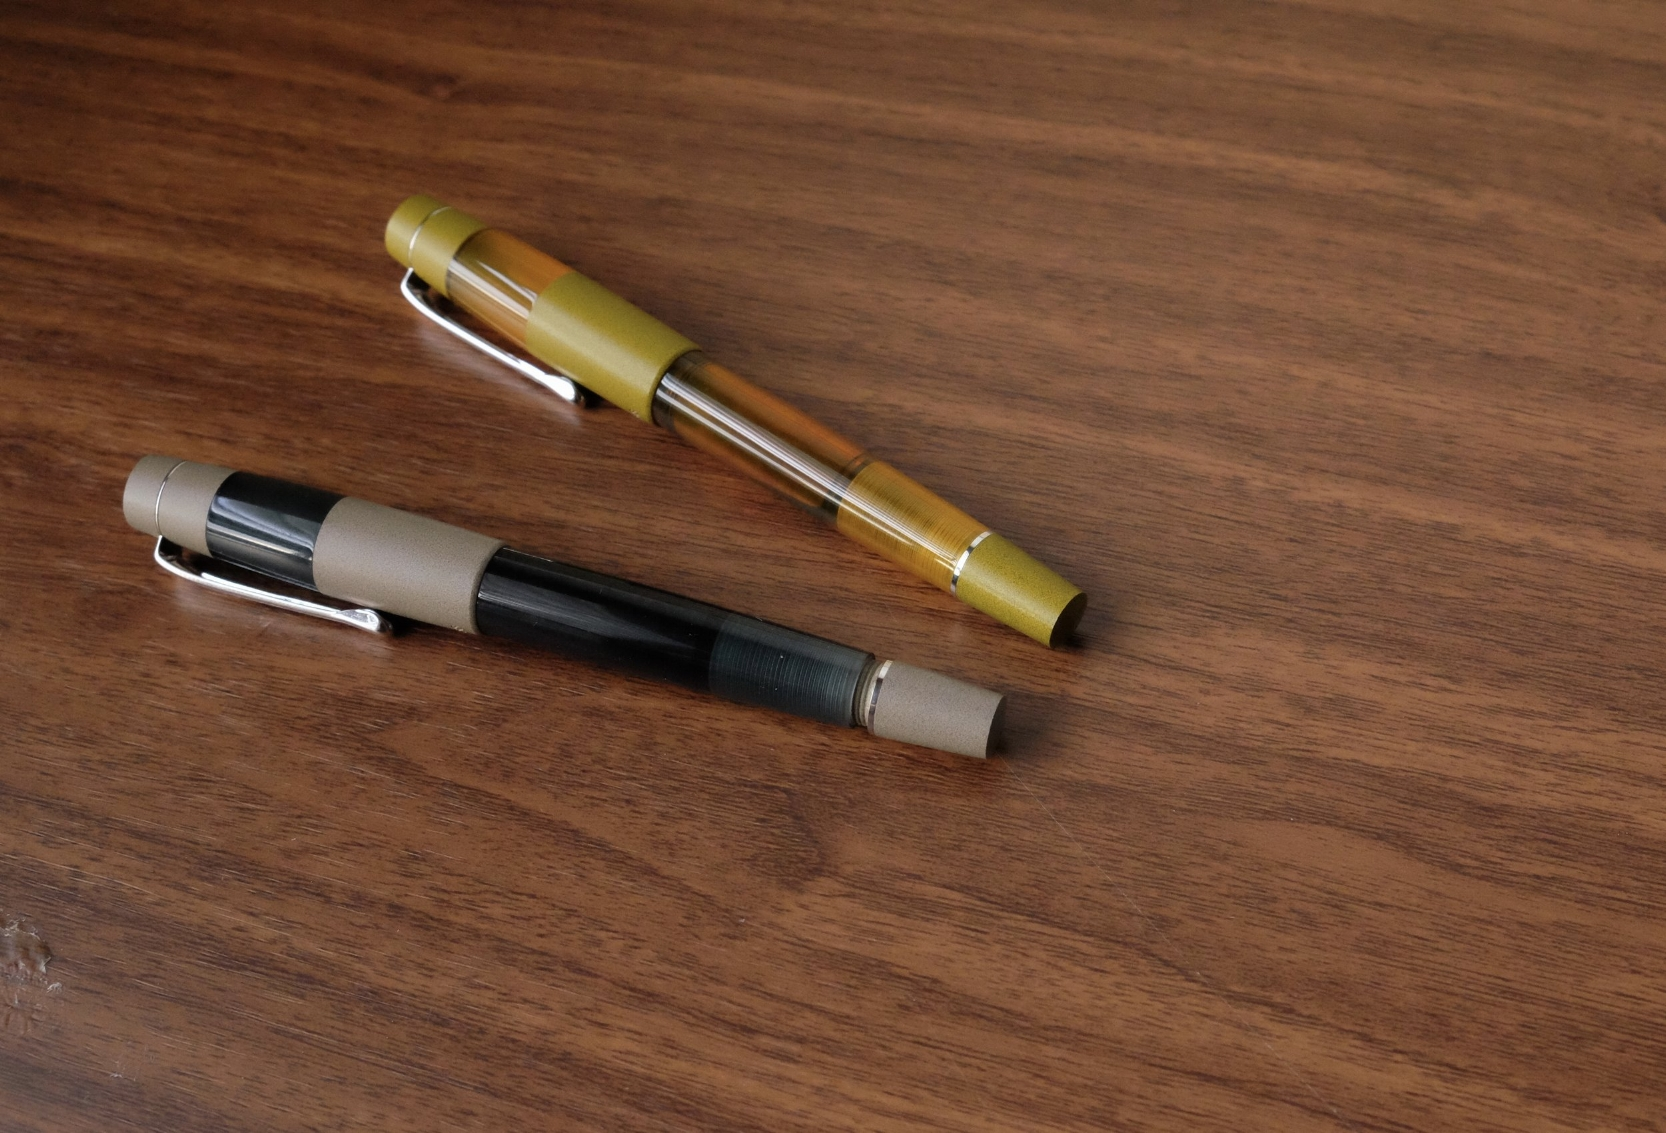 In order to increase ink flow to the nib, all you need to do is open the valve, which unscrews like a piston knob at the rear of the barrel.